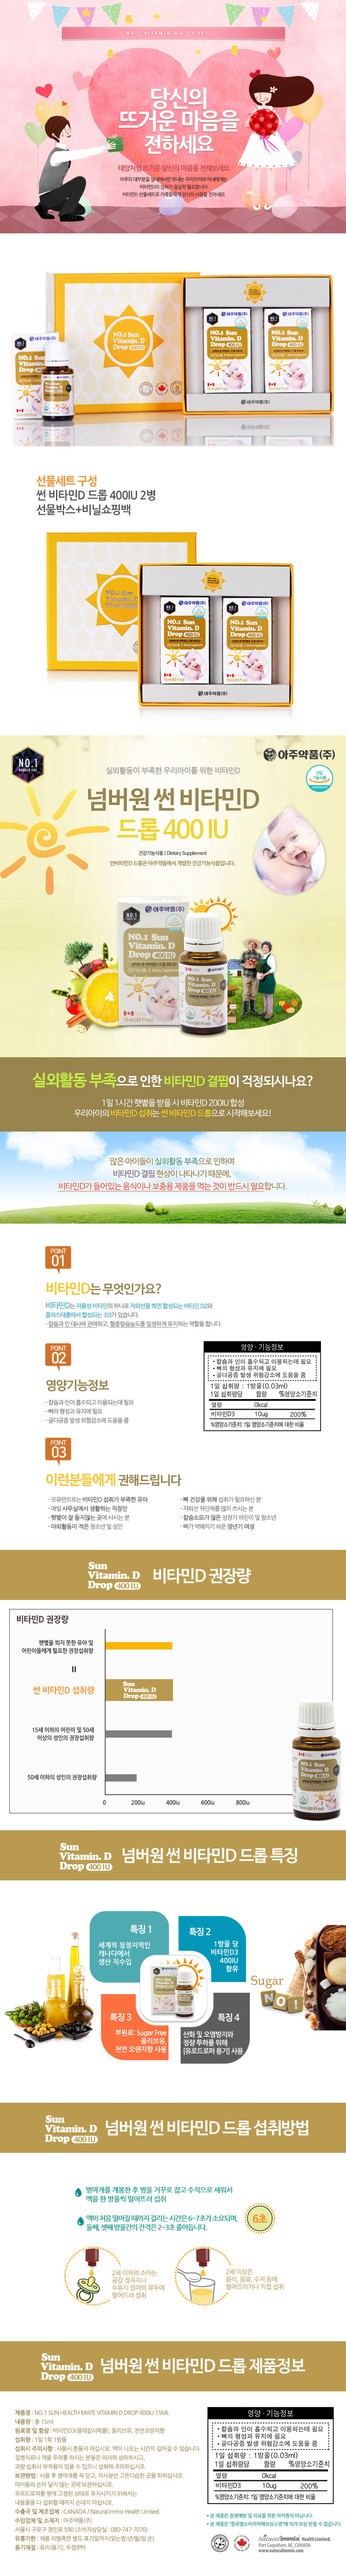 [ Leau Claire ] No.1 Sun Vitamin D Drop 400IU Gift set